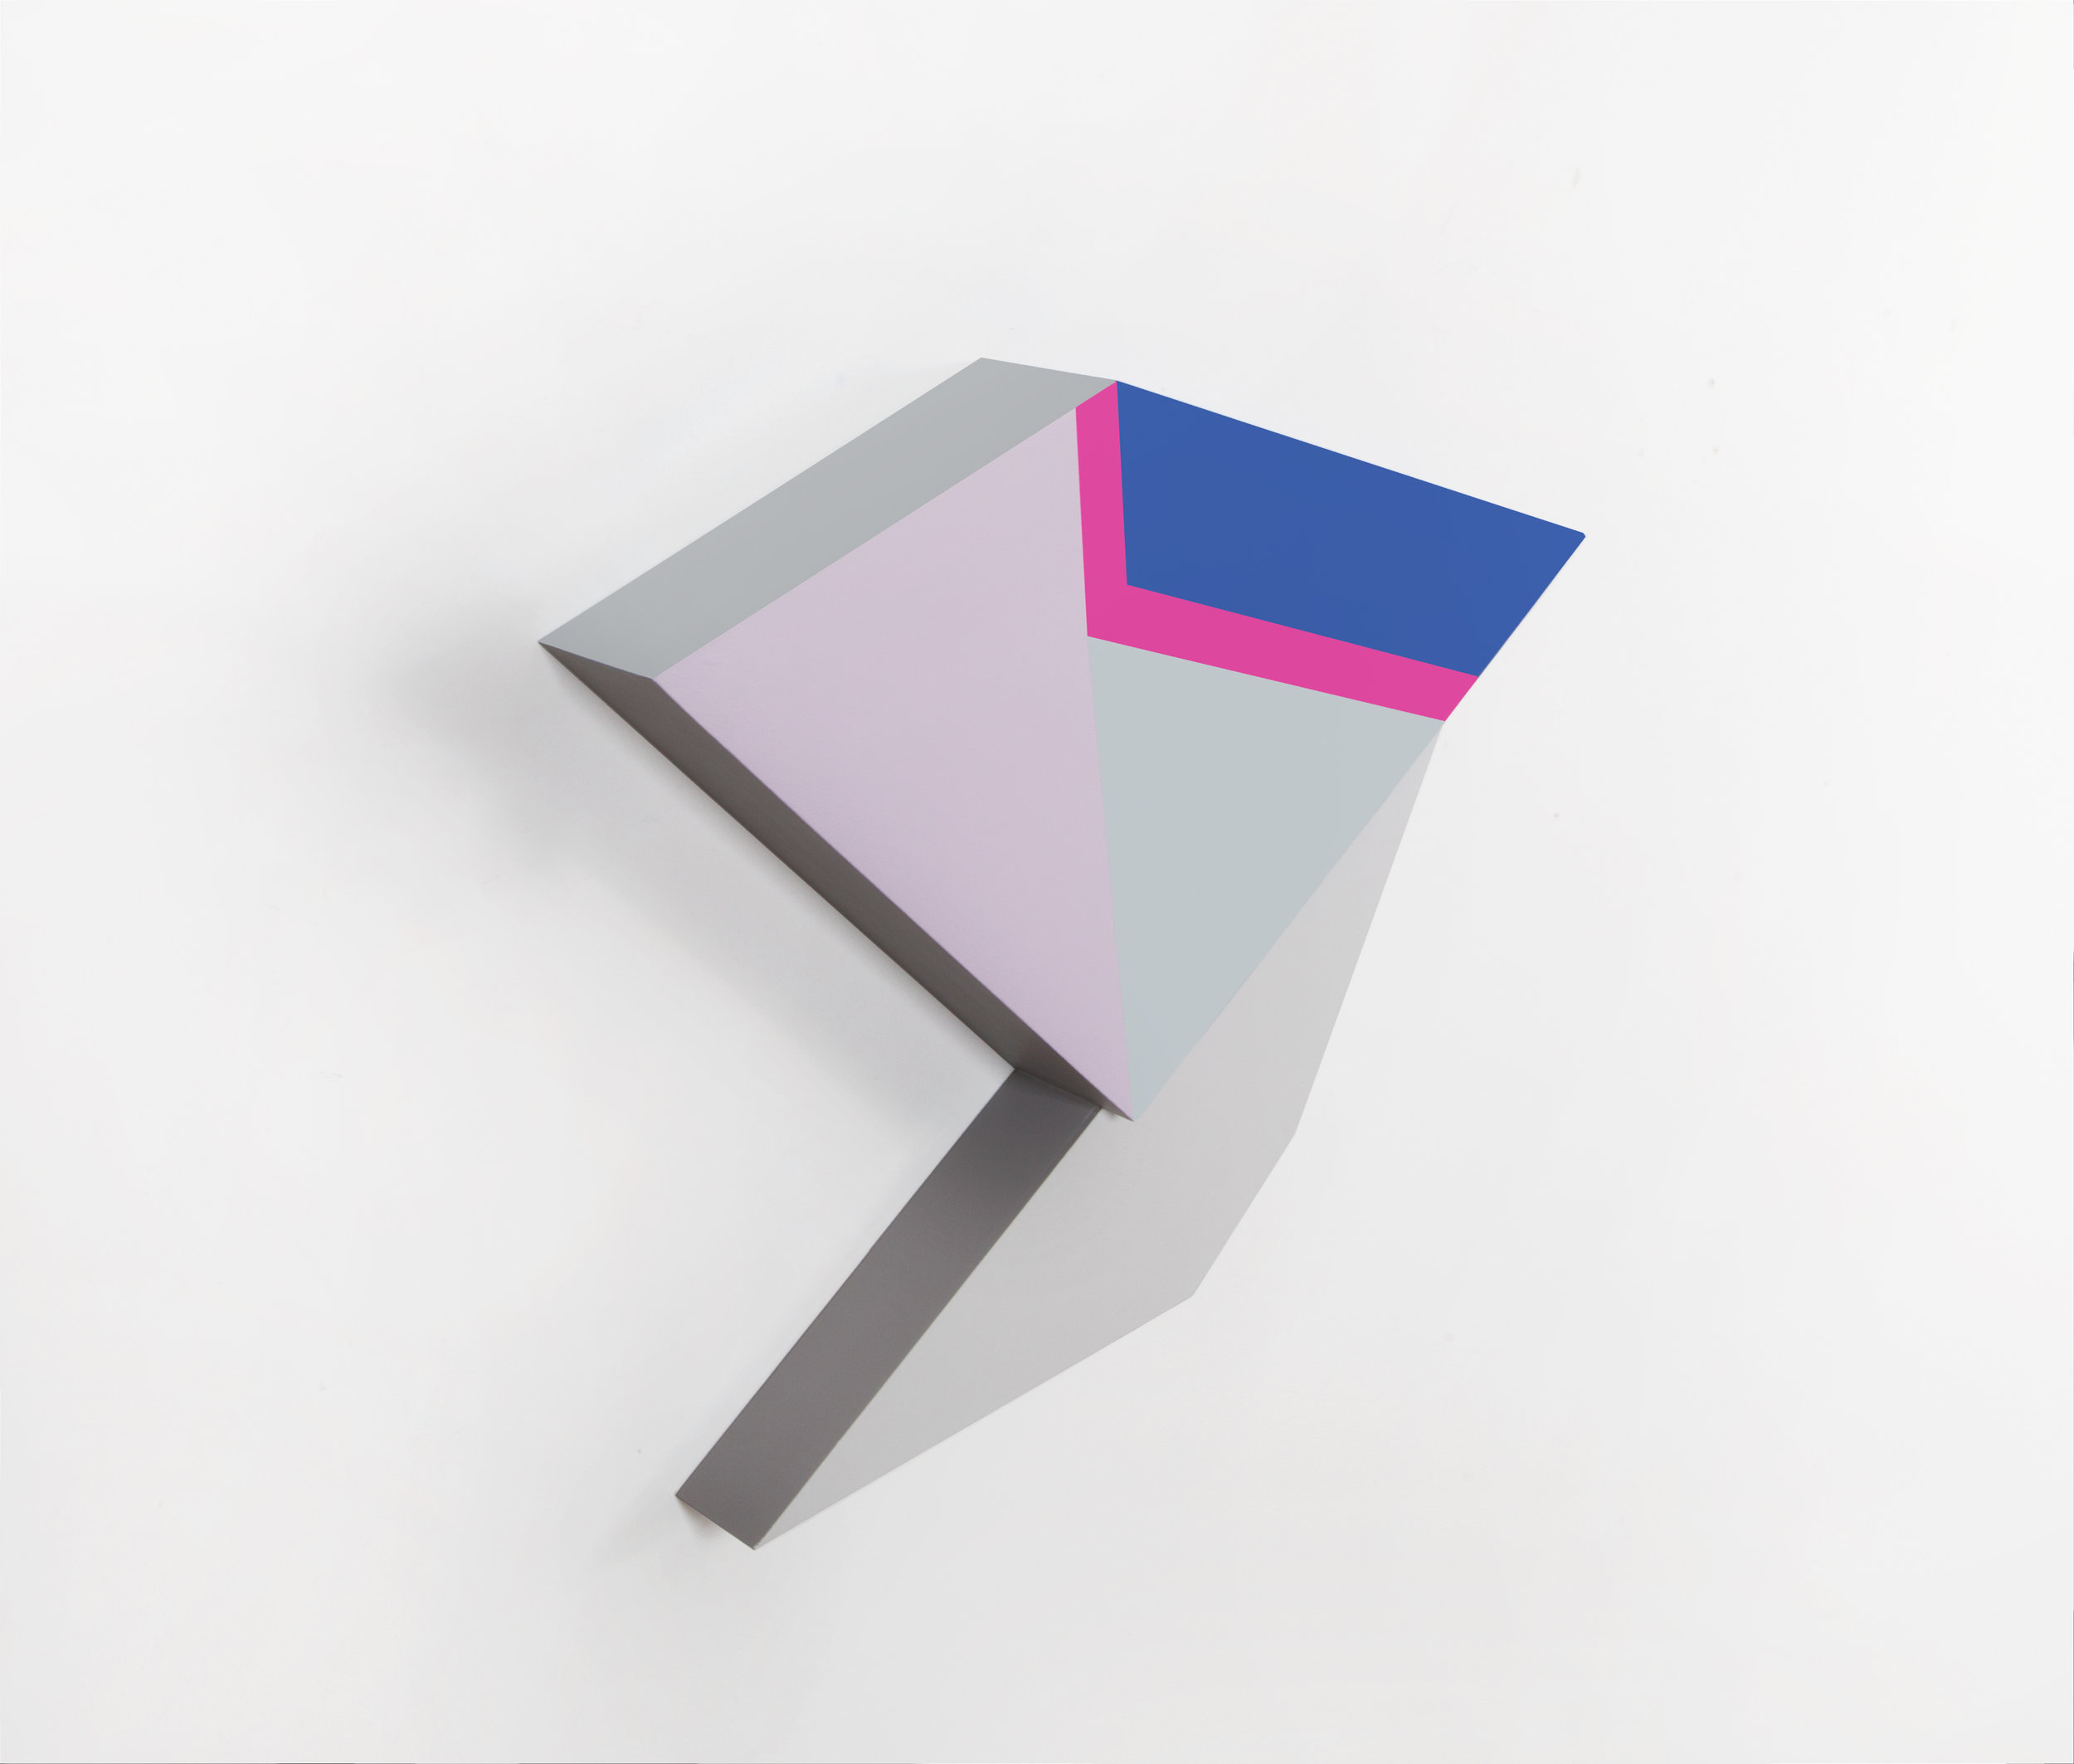 Zin Helena Song   Polygon in space #30   2015   Mixed Media on Wood   28 x 21 x 4 in.